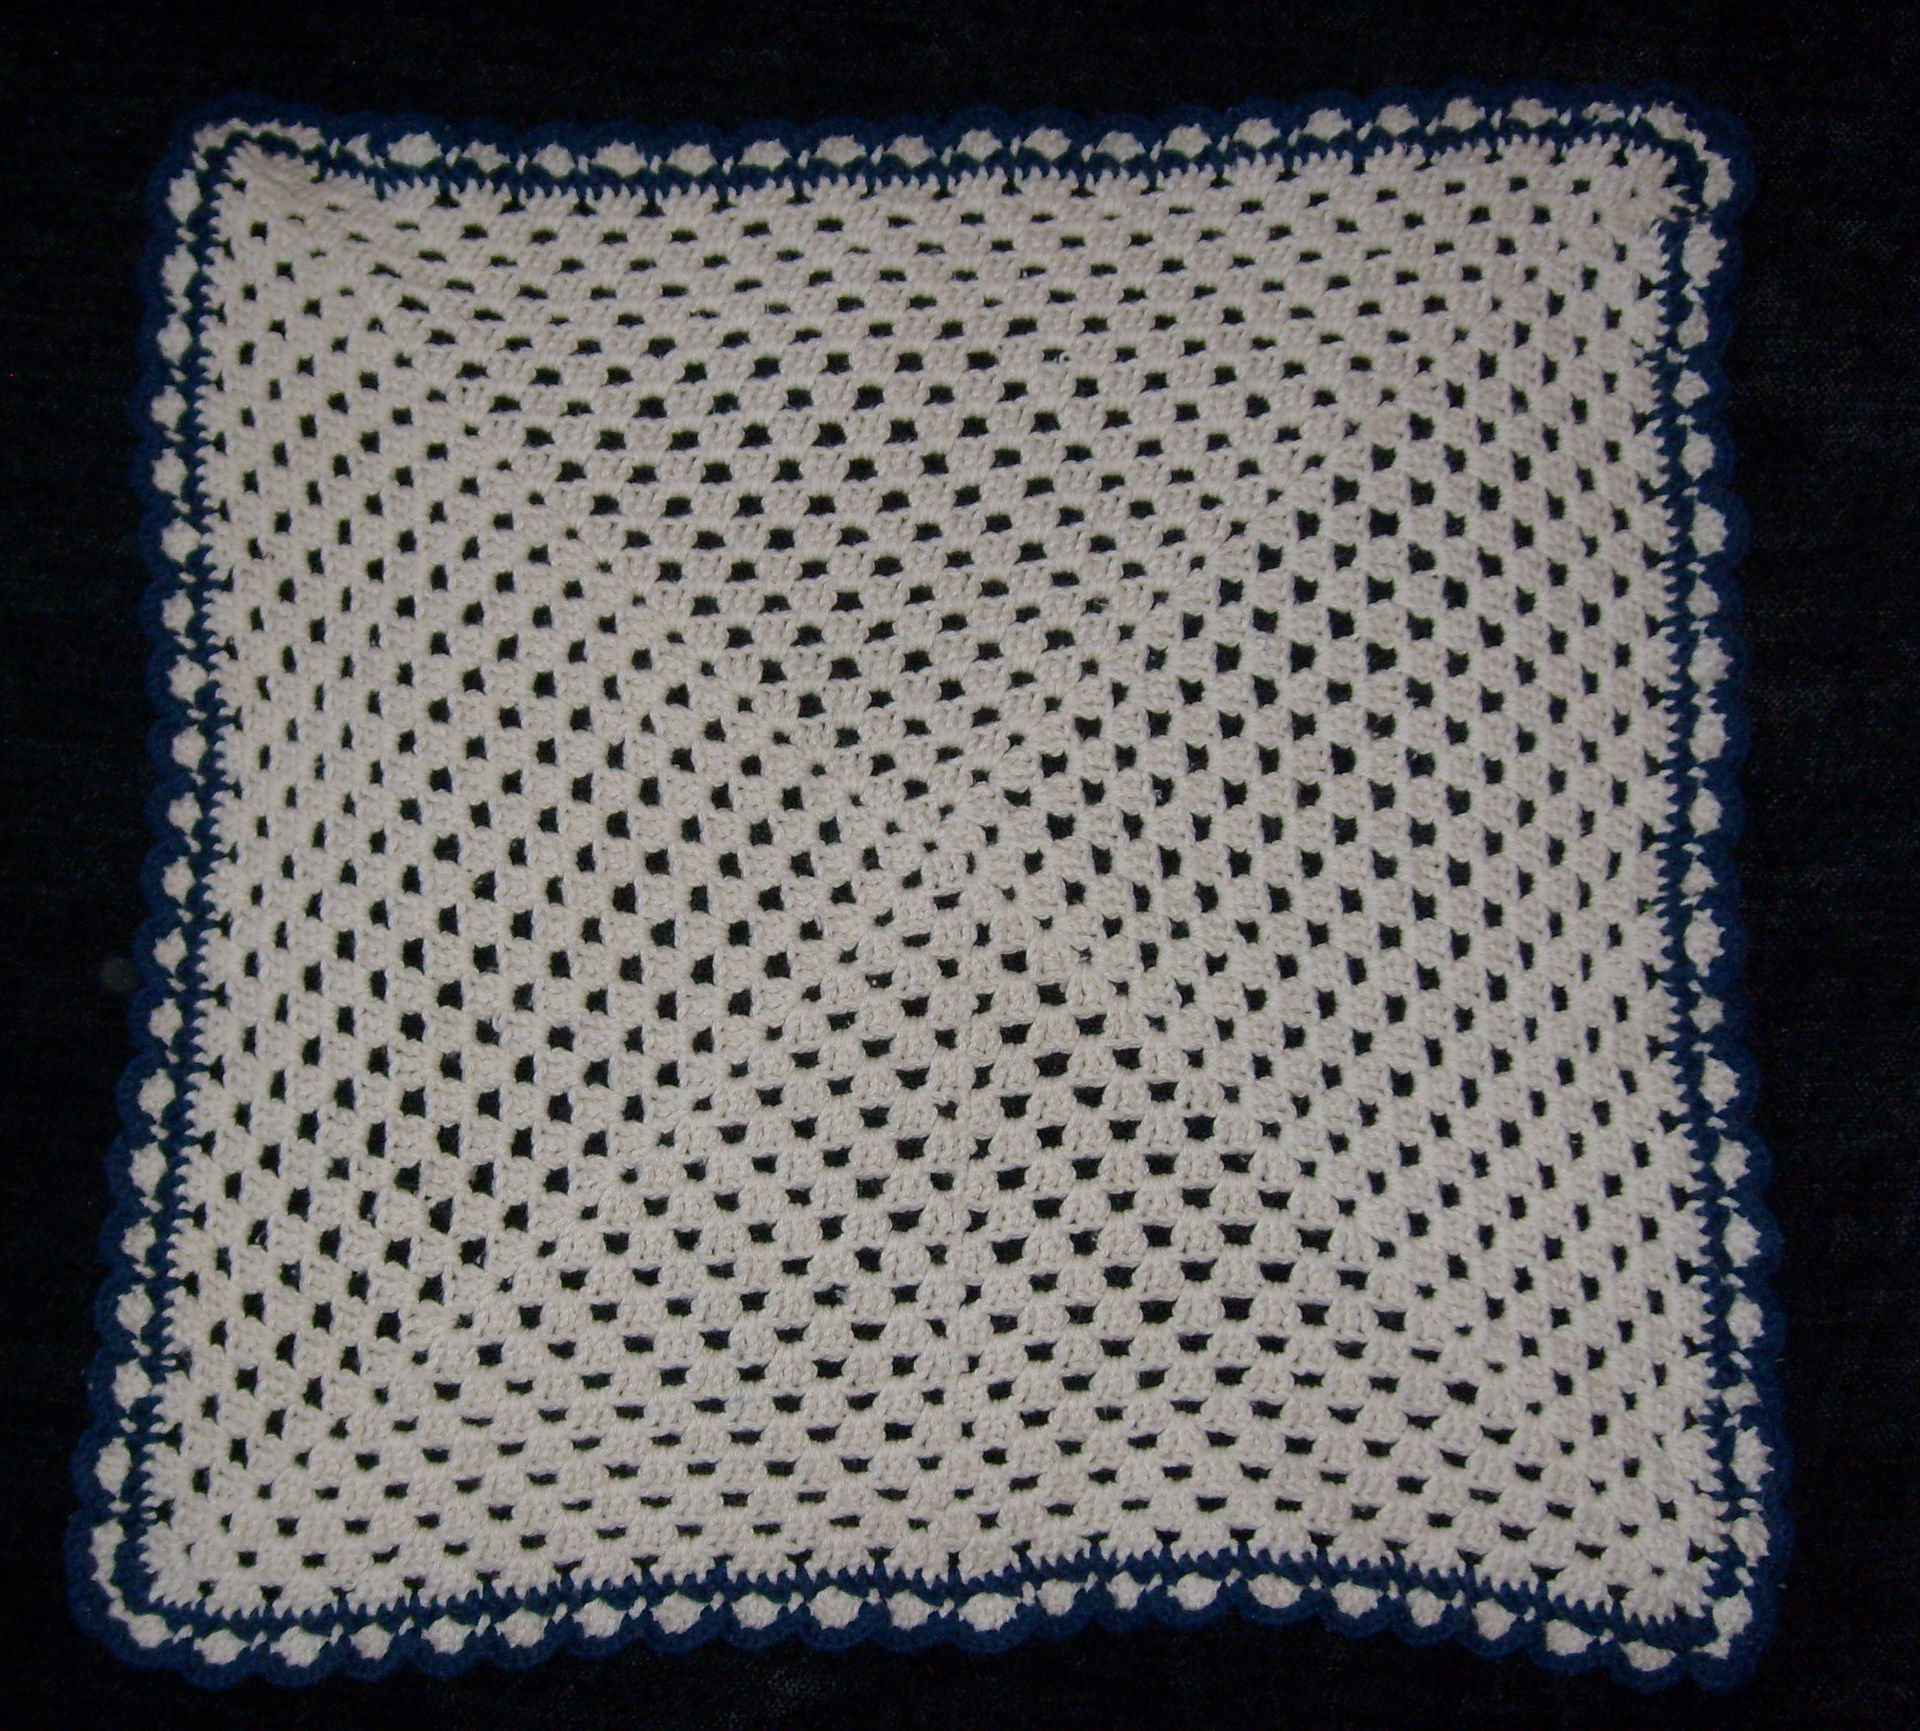 Crochet Stitches Wiki : Shell stitch - Wikipedia